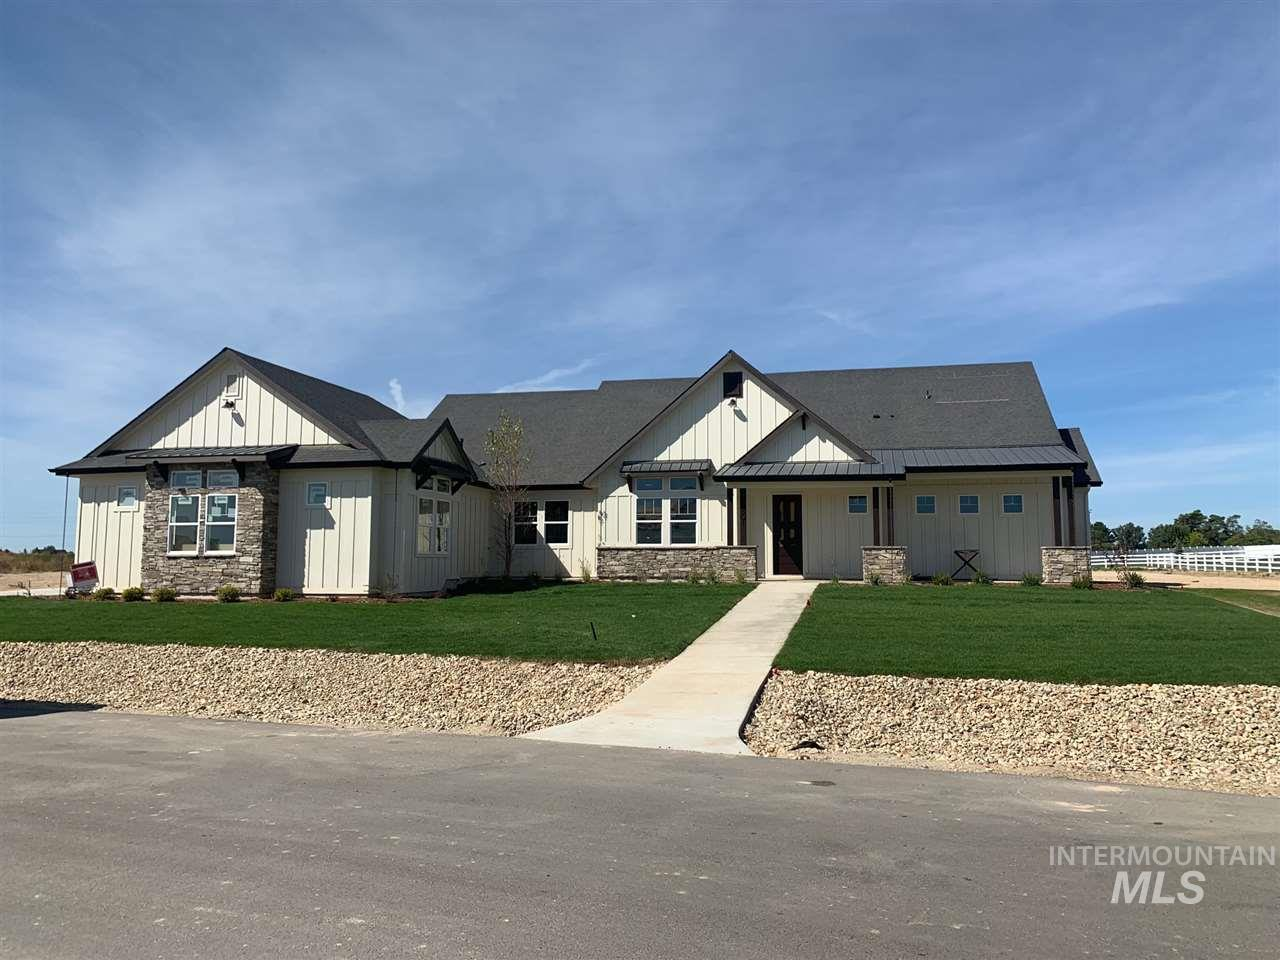 24801 Plainfield, Caldwell, Idaho 83607, 4 Bedrooms, 3 Bathrooms, Residential For Sale, Price $594,500, 98733113